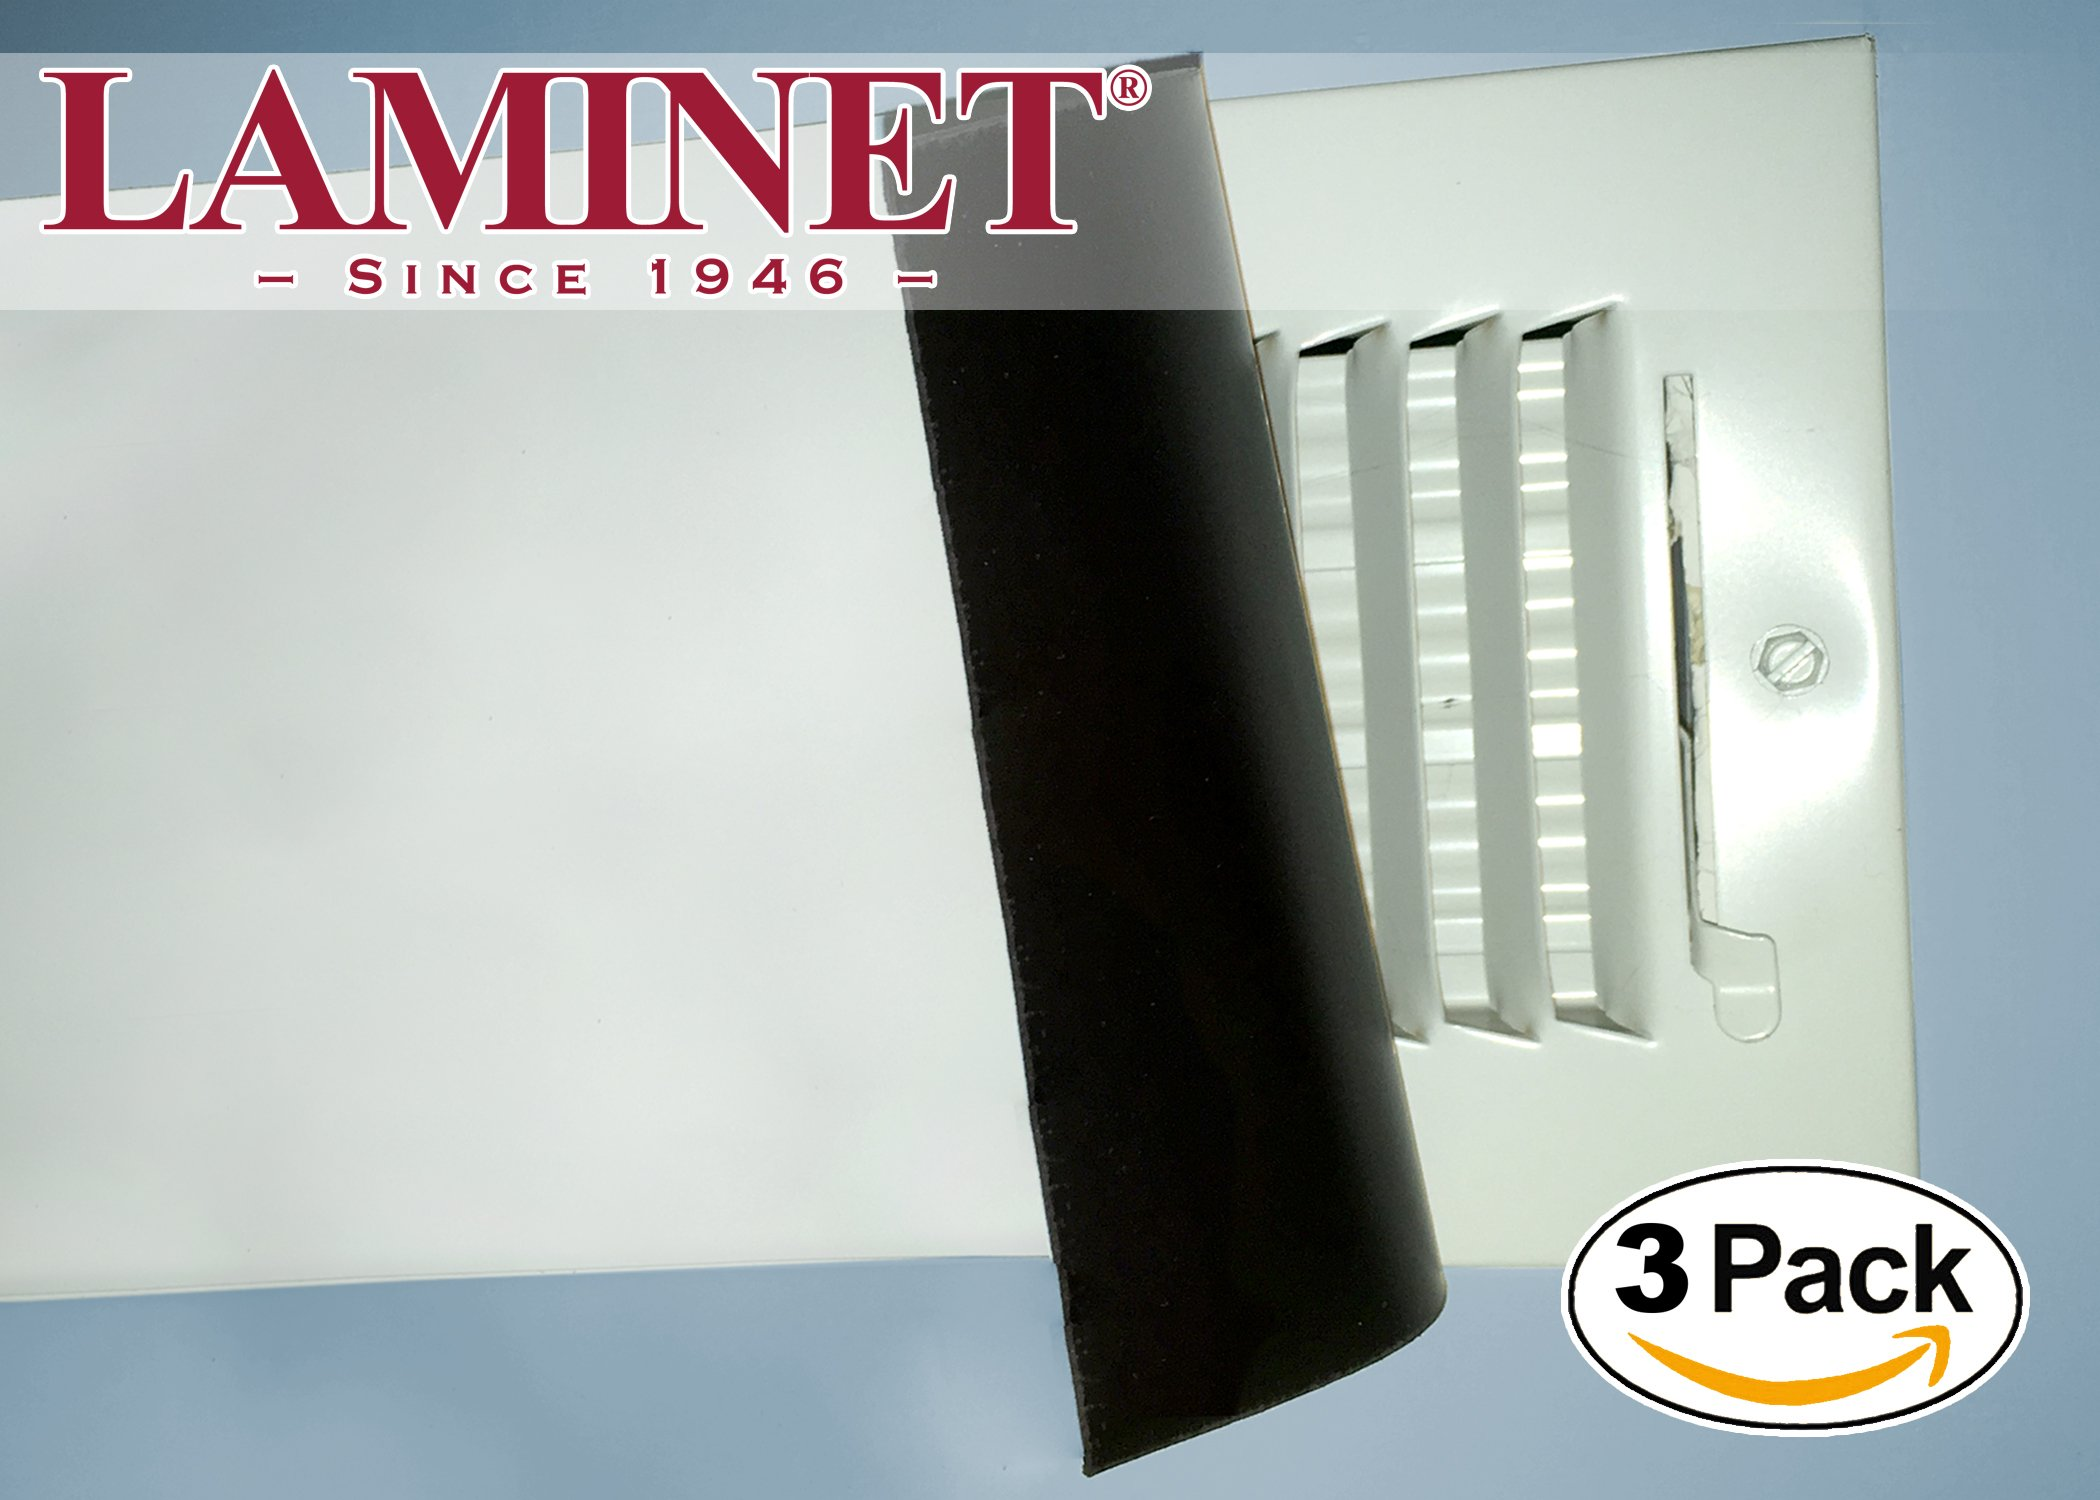 LAMINET Thick White Magnetic Floor Vent Covers - Made in USA - Industrial Strength Magnet for Floor Air Registers - Even ON Ceiling Vents & Hard to Access Areas - 8'' x 14.5'' - 3-Pack